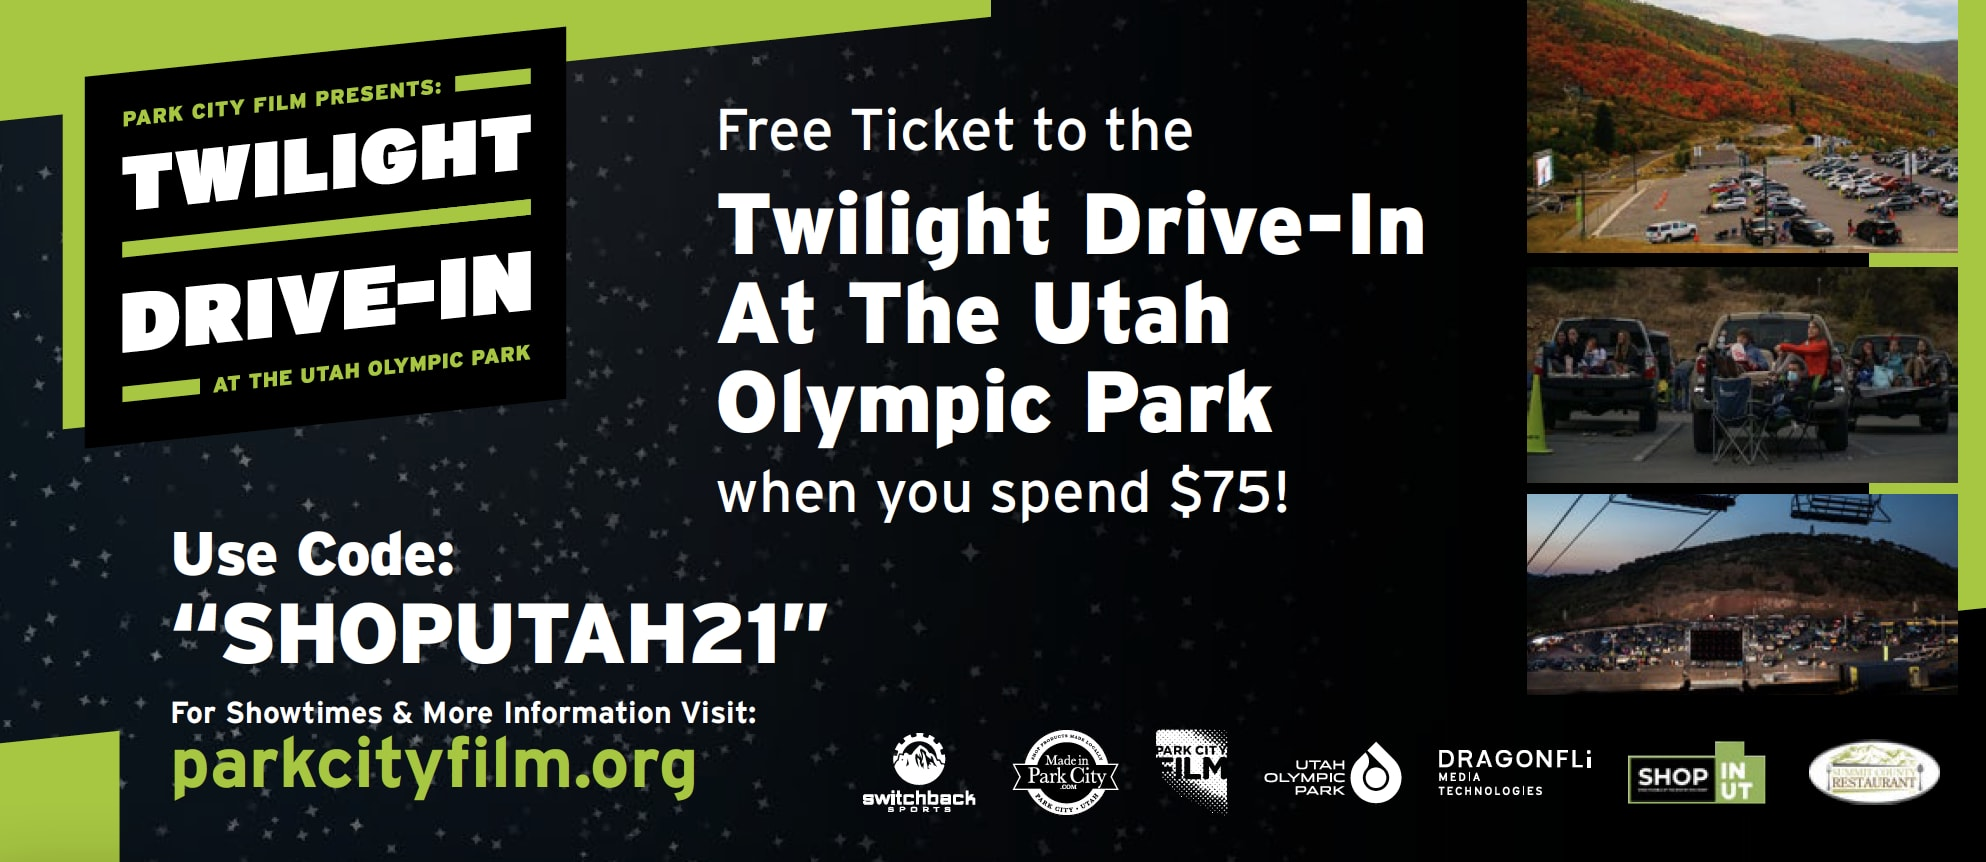 Twilight Drive-in at the Utah Olympic Park: Dazed and Confused Image